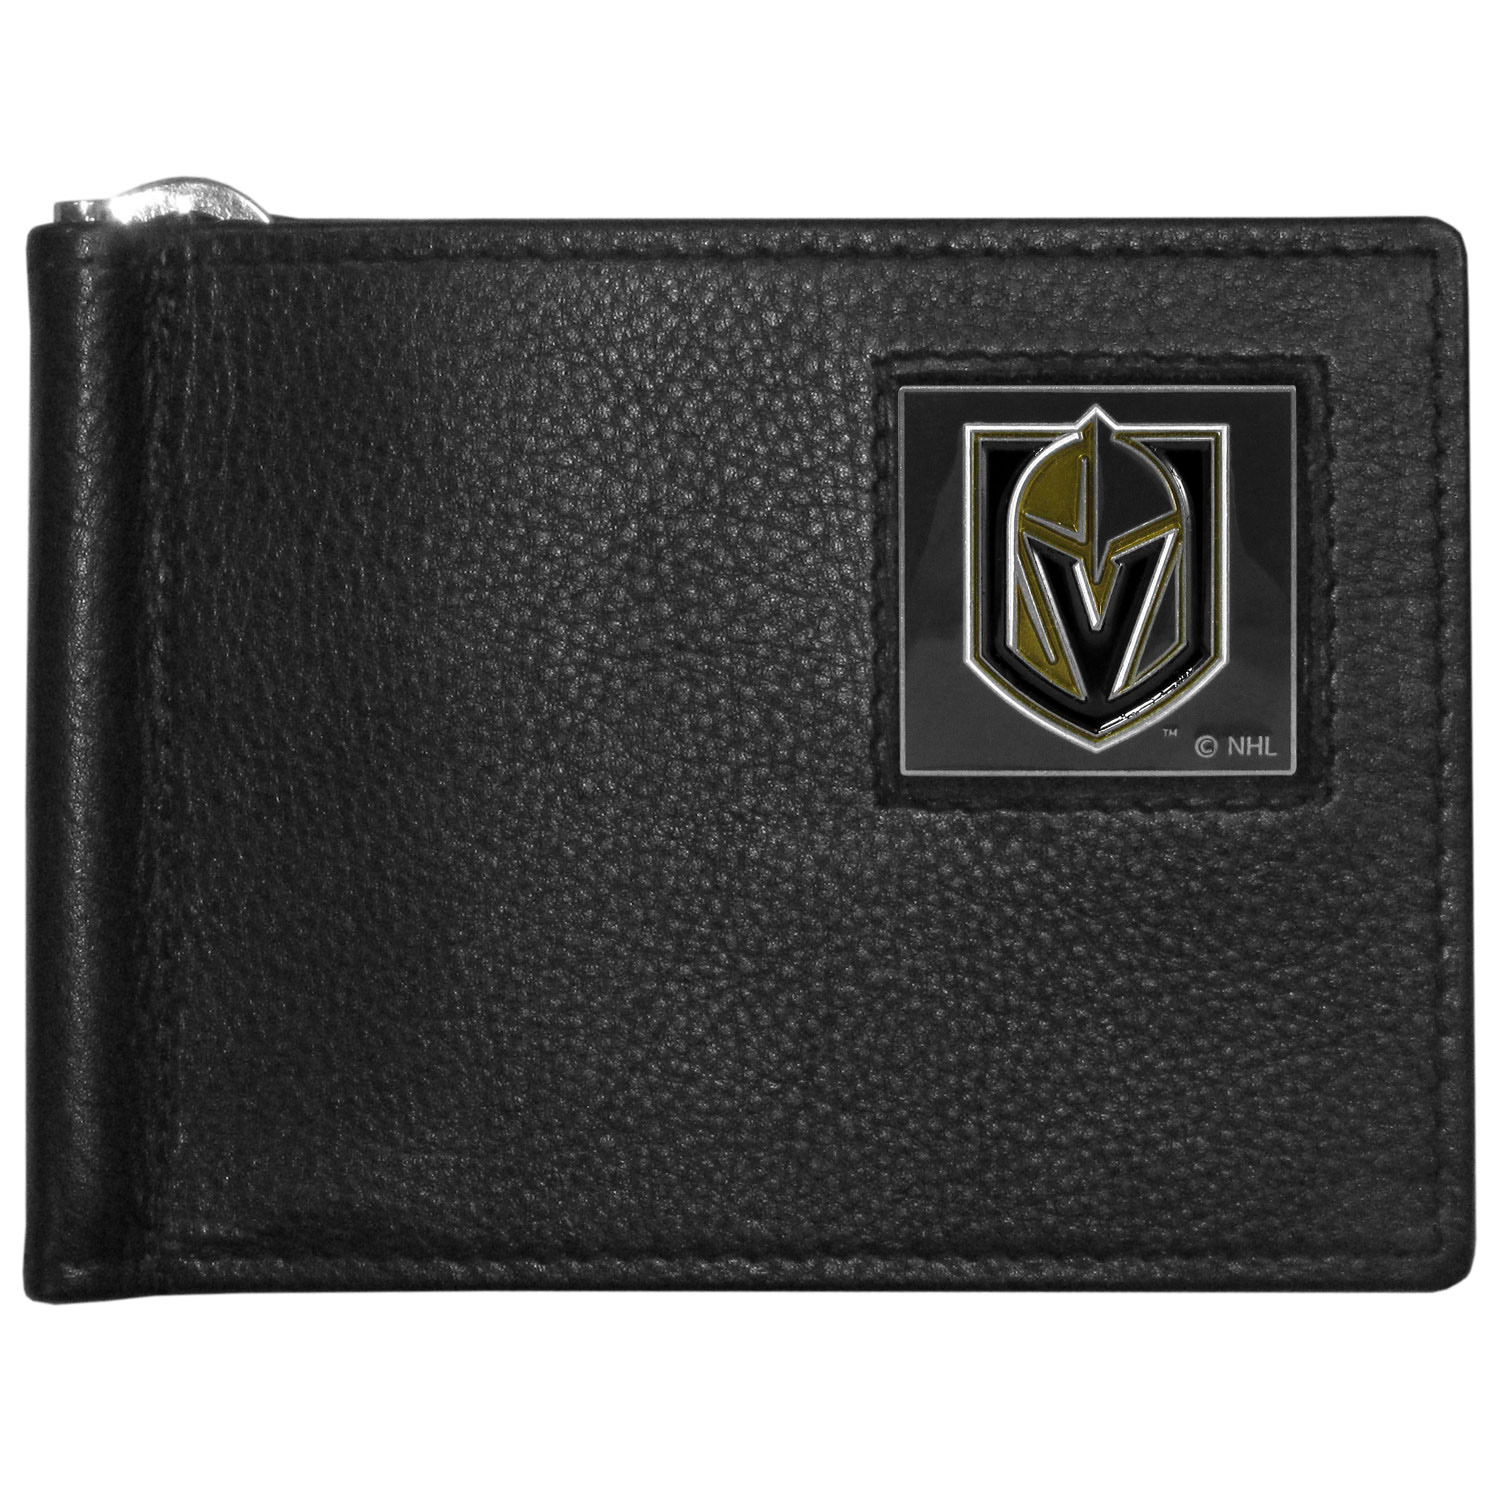 Vegas Golden Knights® Leather Bill Clip Wallet - This cool new style wallet features an inner, metal bill clip that lips up for easy access. The super slim wallet holds tons of stuff with ample pockets, credit card slots & windowed ID slot.  The wallet is made of genuine fine grain leather and it finished with a metal Vegas Golden Knights® emblem. The wallet is shipped in gift box packaging.